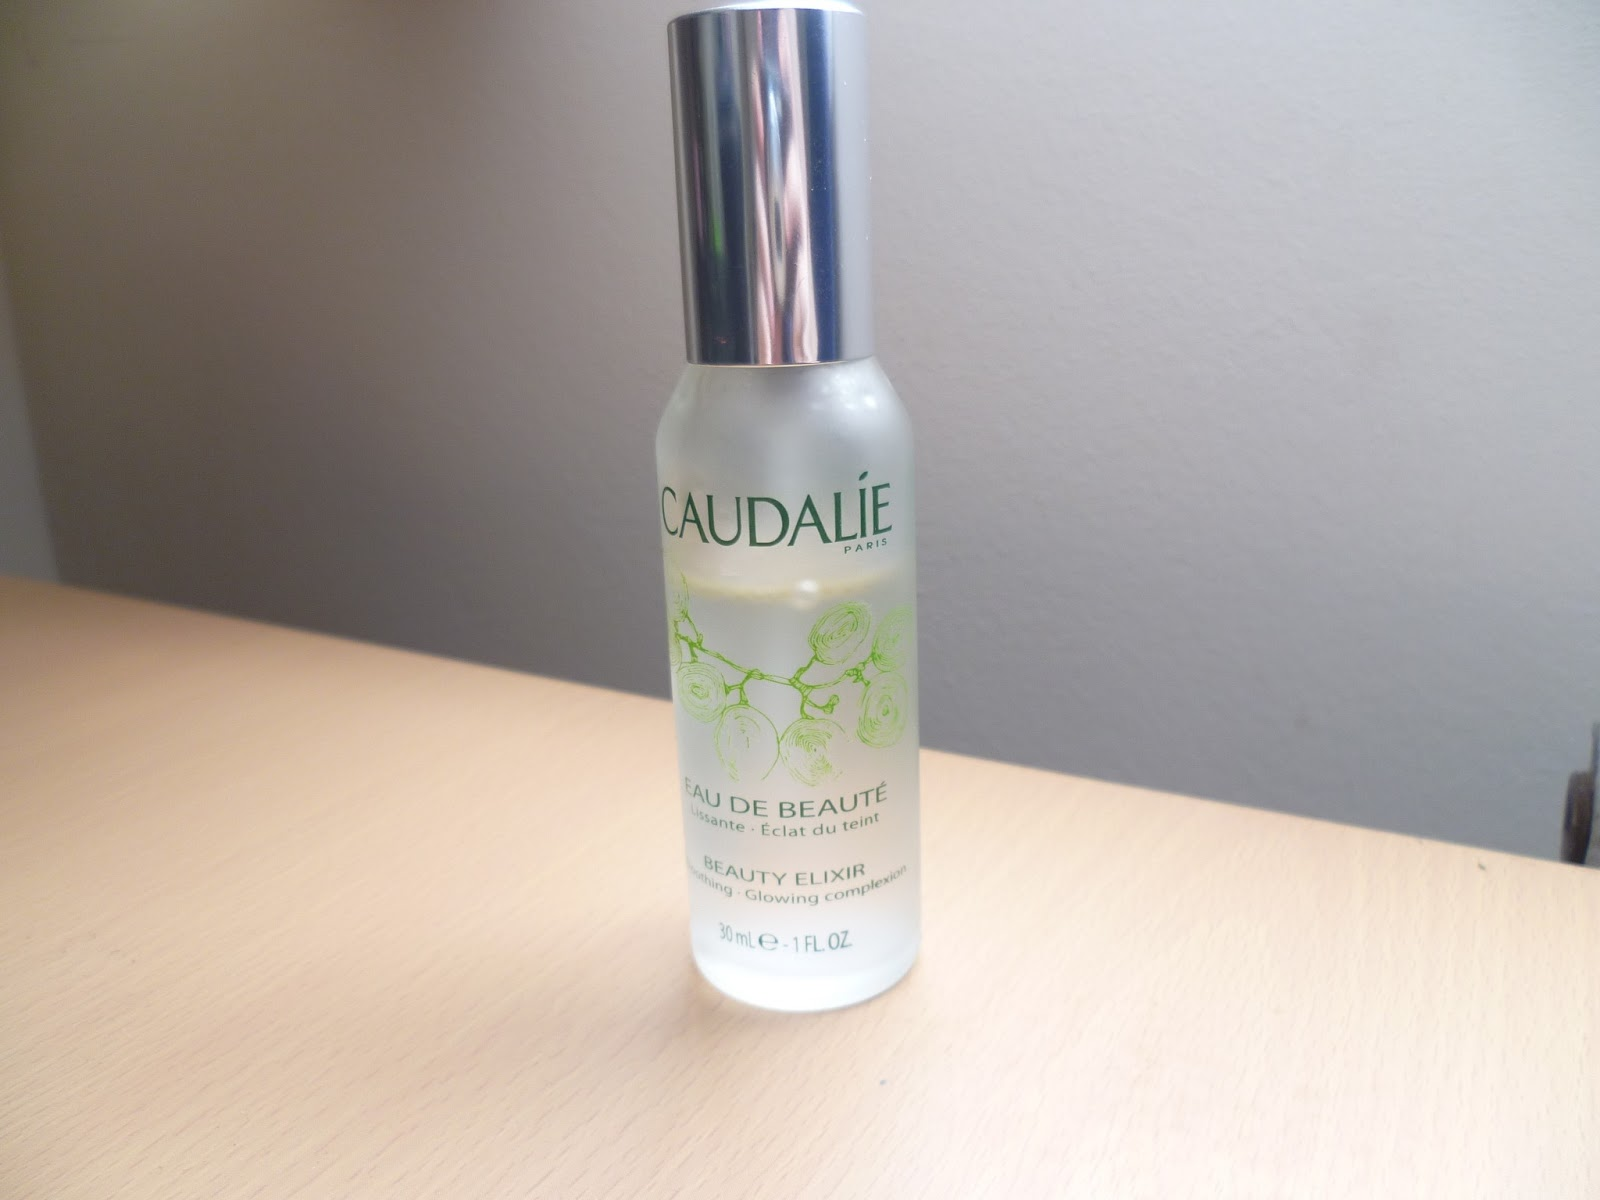 Caudalie facial products that interrupt